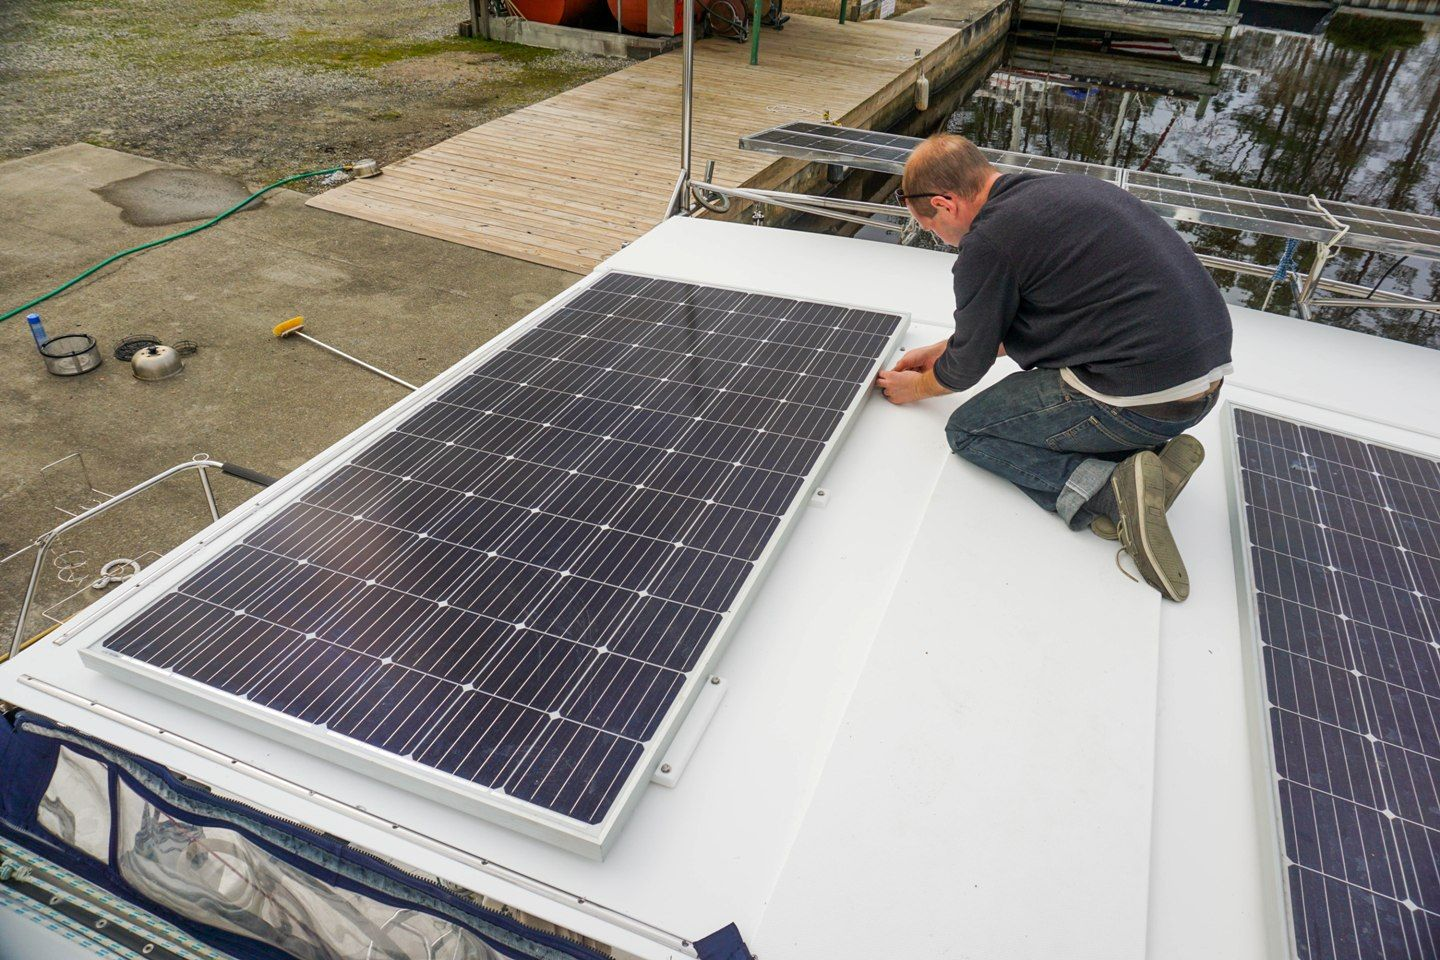 Solar Panel Installation and Cost - teal tales